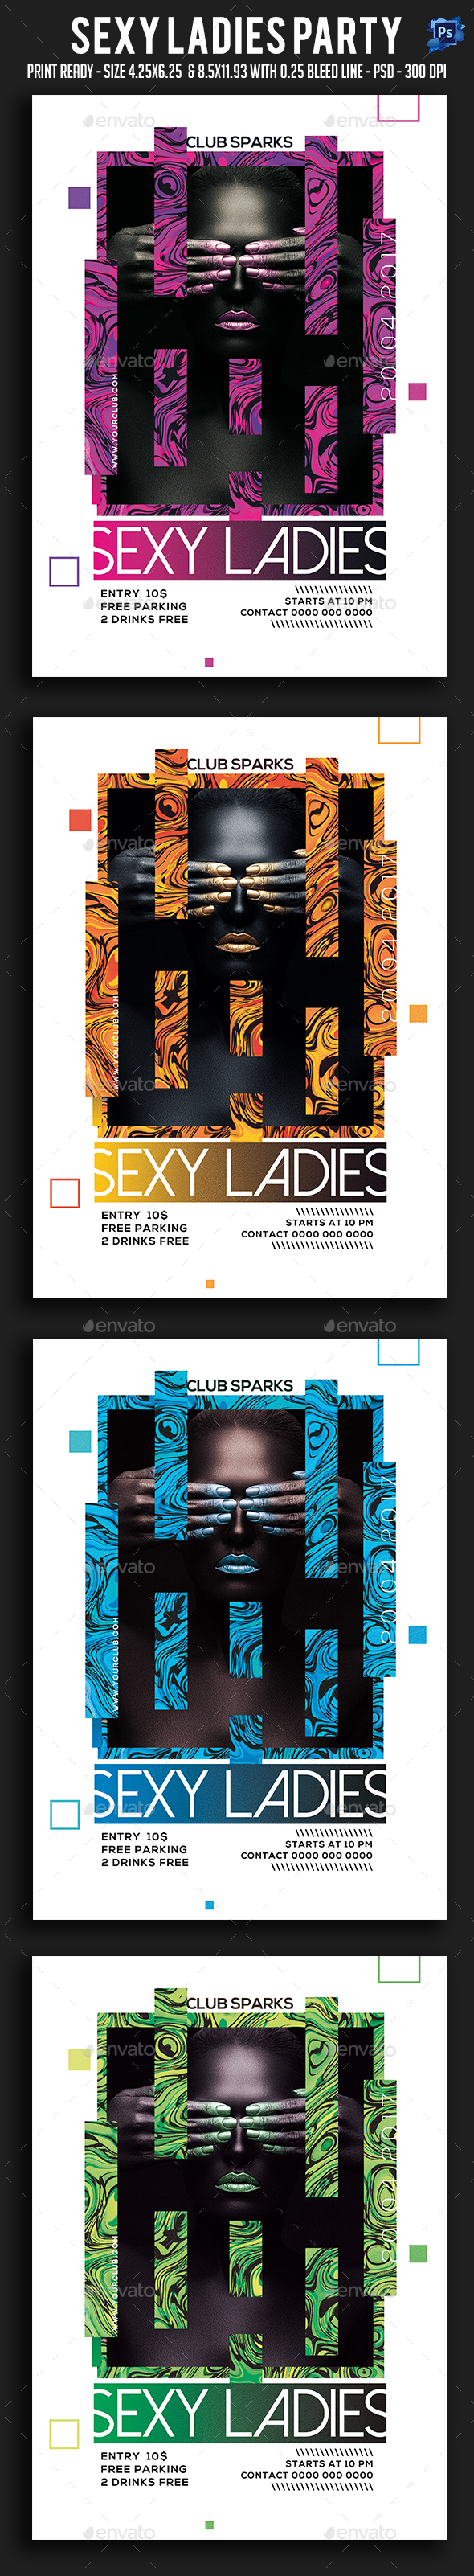 Sexy Ladies Party Flyer - Clubs & Parties Events